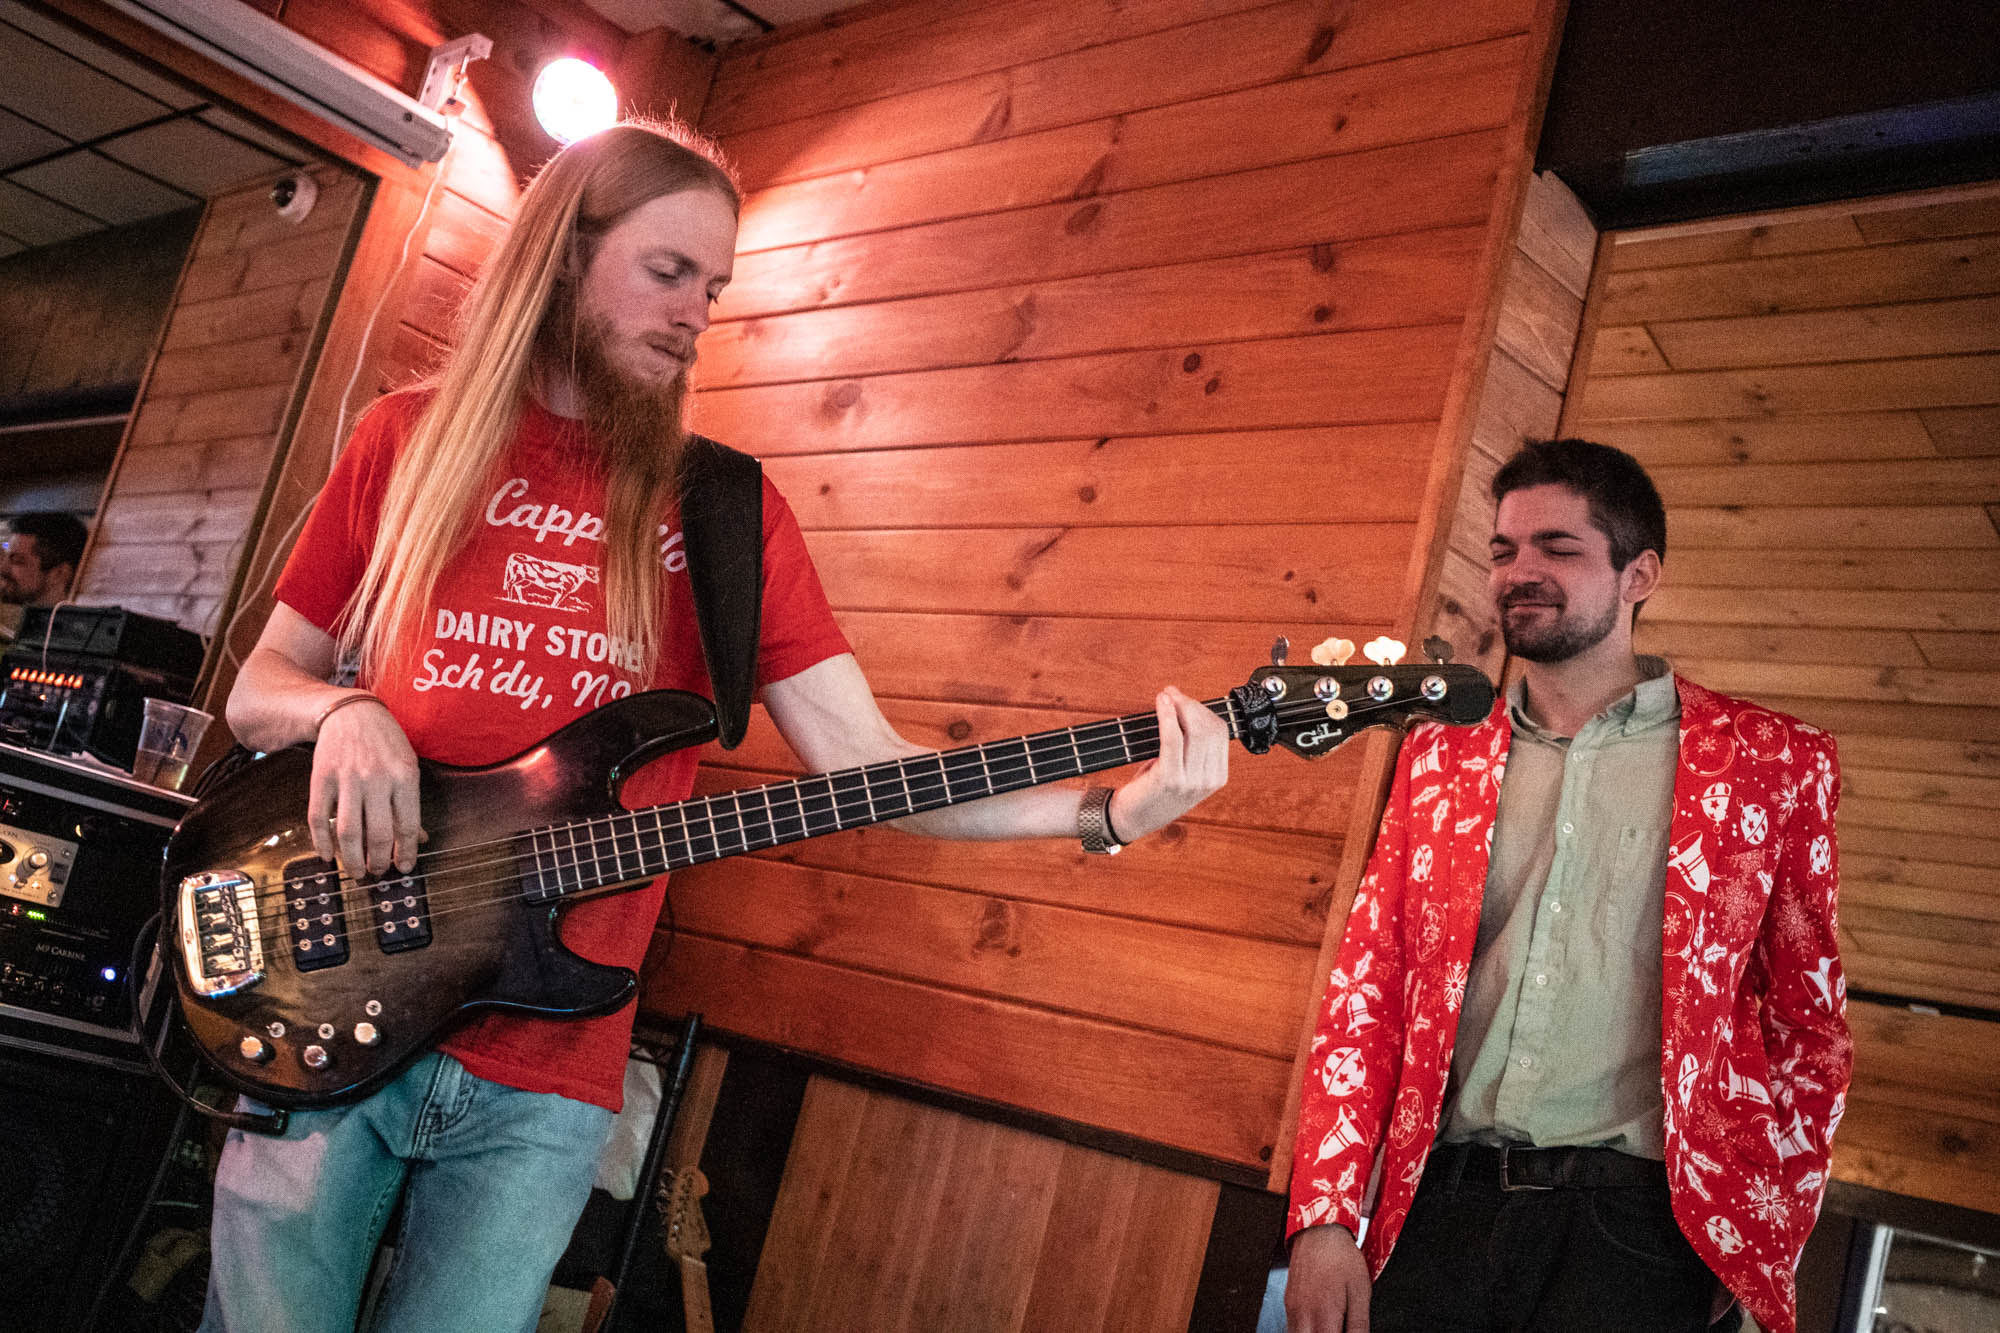 GALLERY: The Switch Holiday Show in Lake George, NY